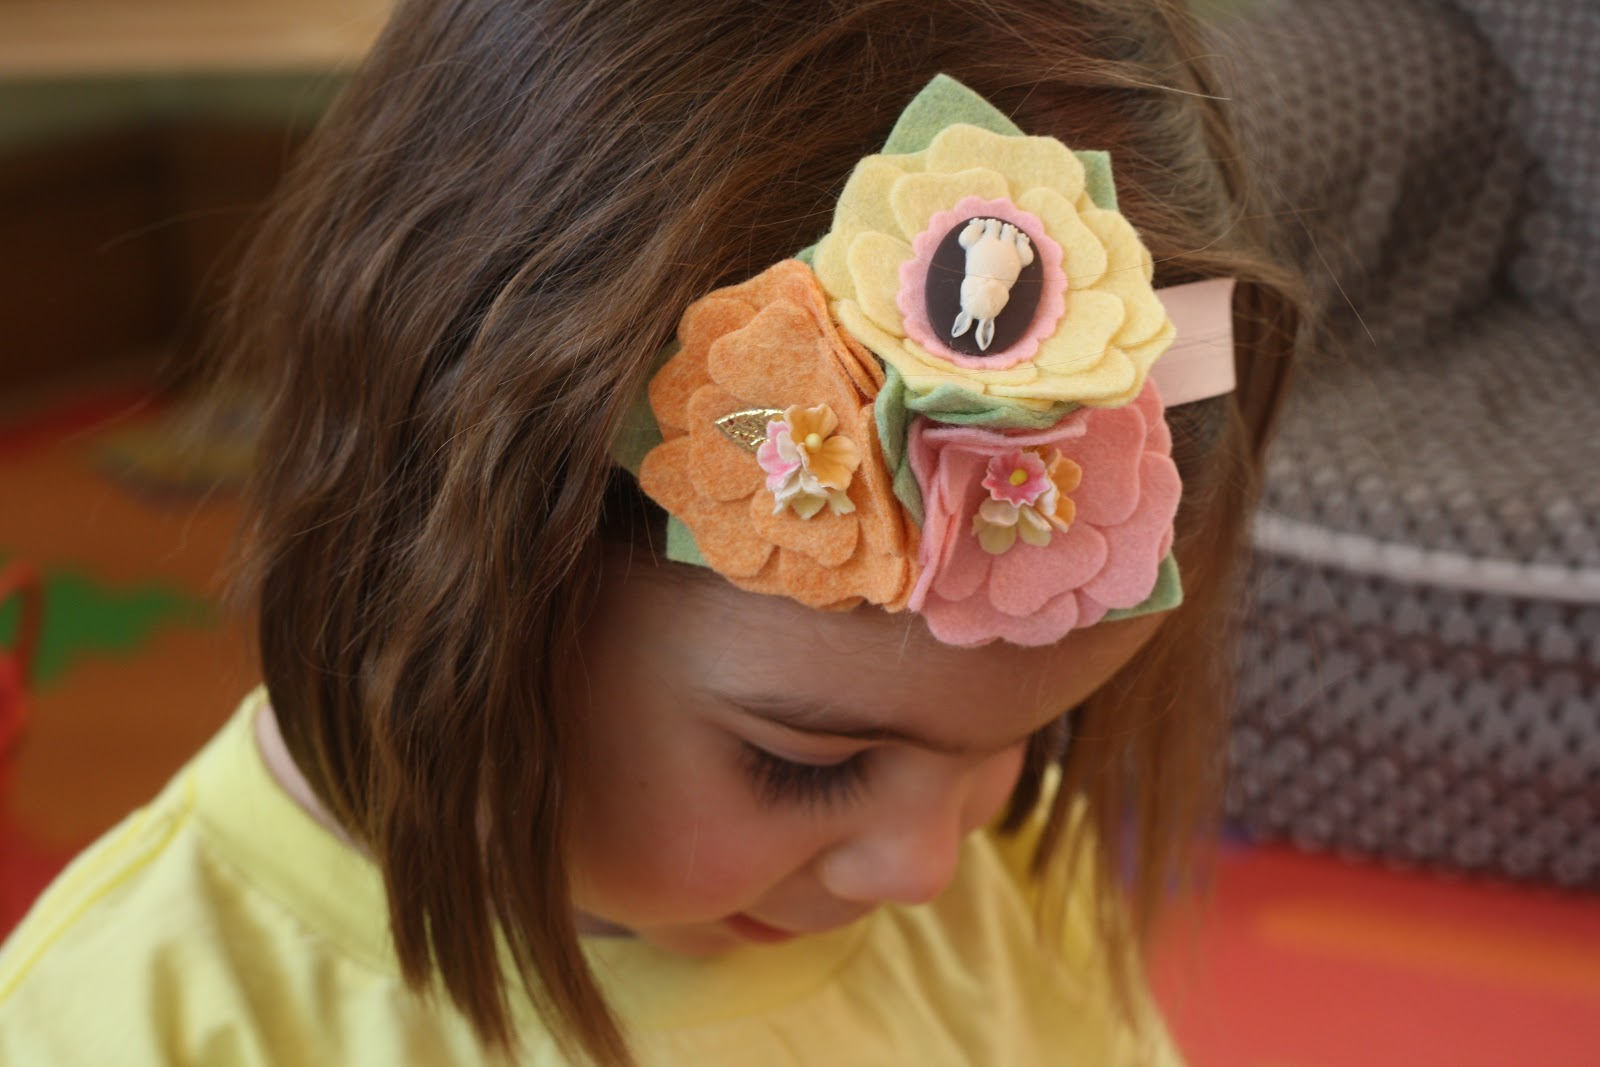 Easter basket ideas part 2 giveaway the chirping moms this shop has the most beautiful headbands hair clips also ive gotten a lot of hair accessories for the girls over the past few years ive never seen negle Choice Image